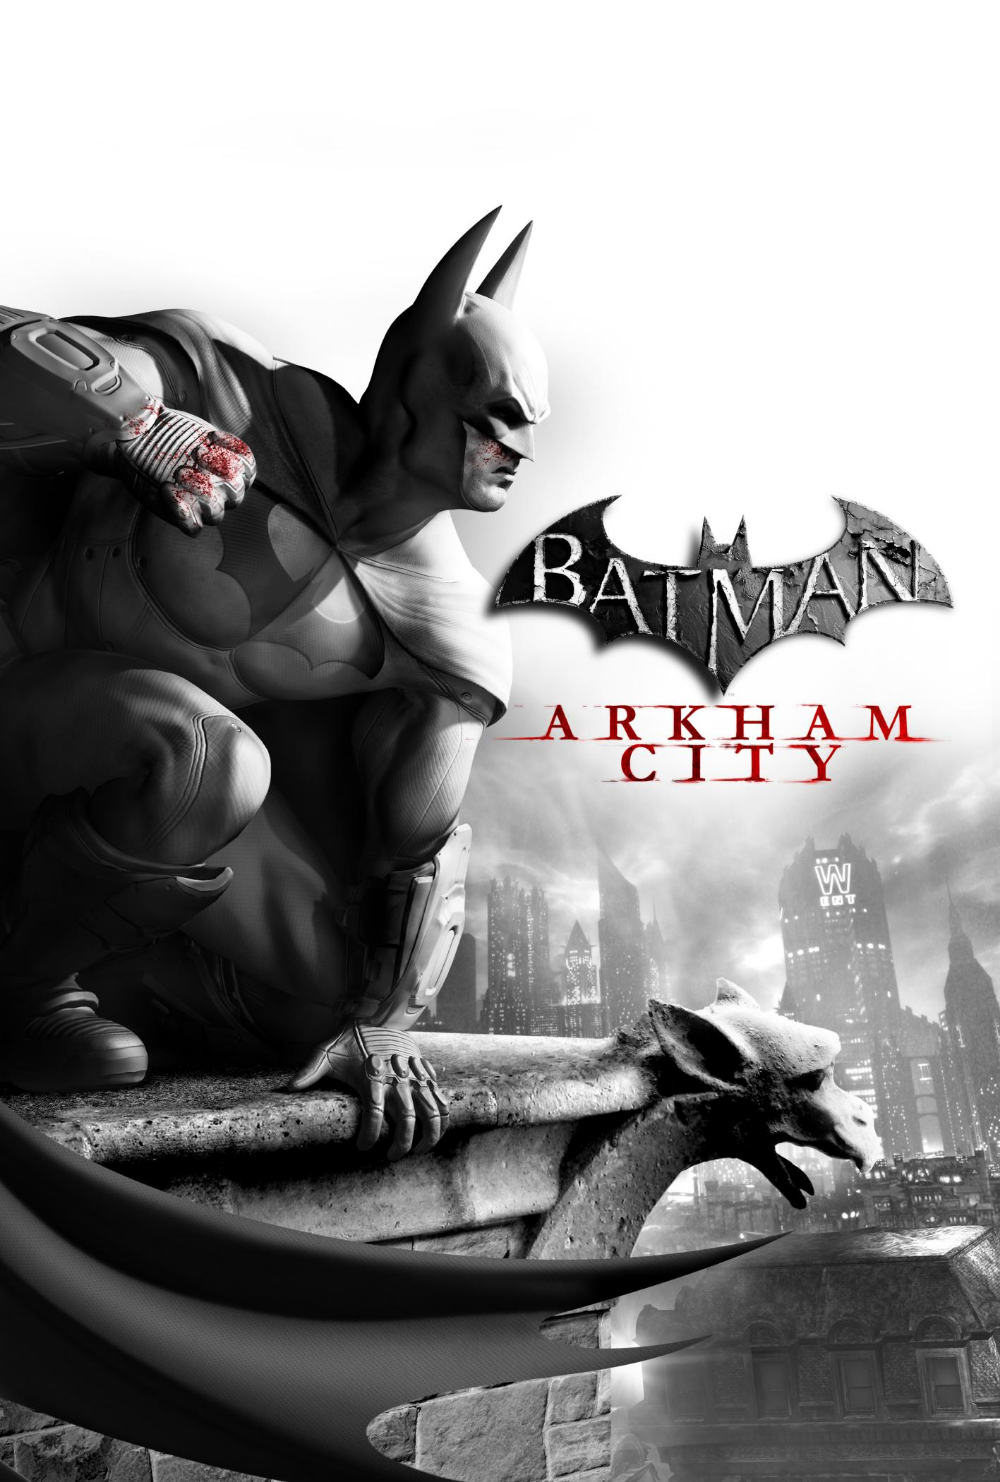 batman arkham city Google Search Batman arkham city